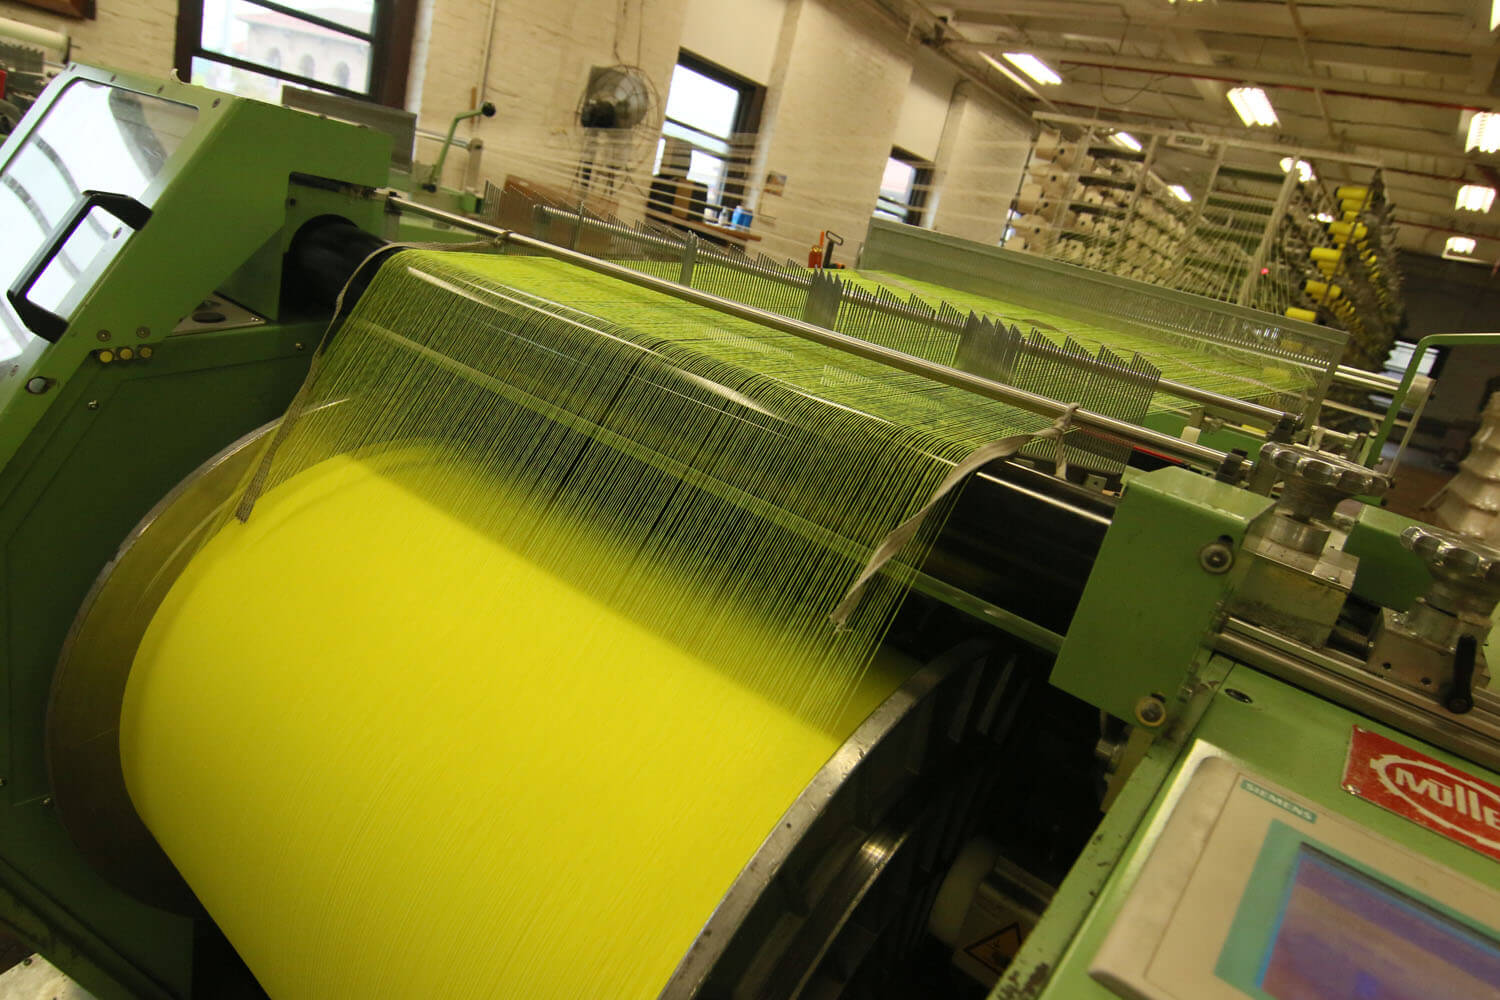 Yellow fabric being rolled into a large spool during the textile manufacturing process